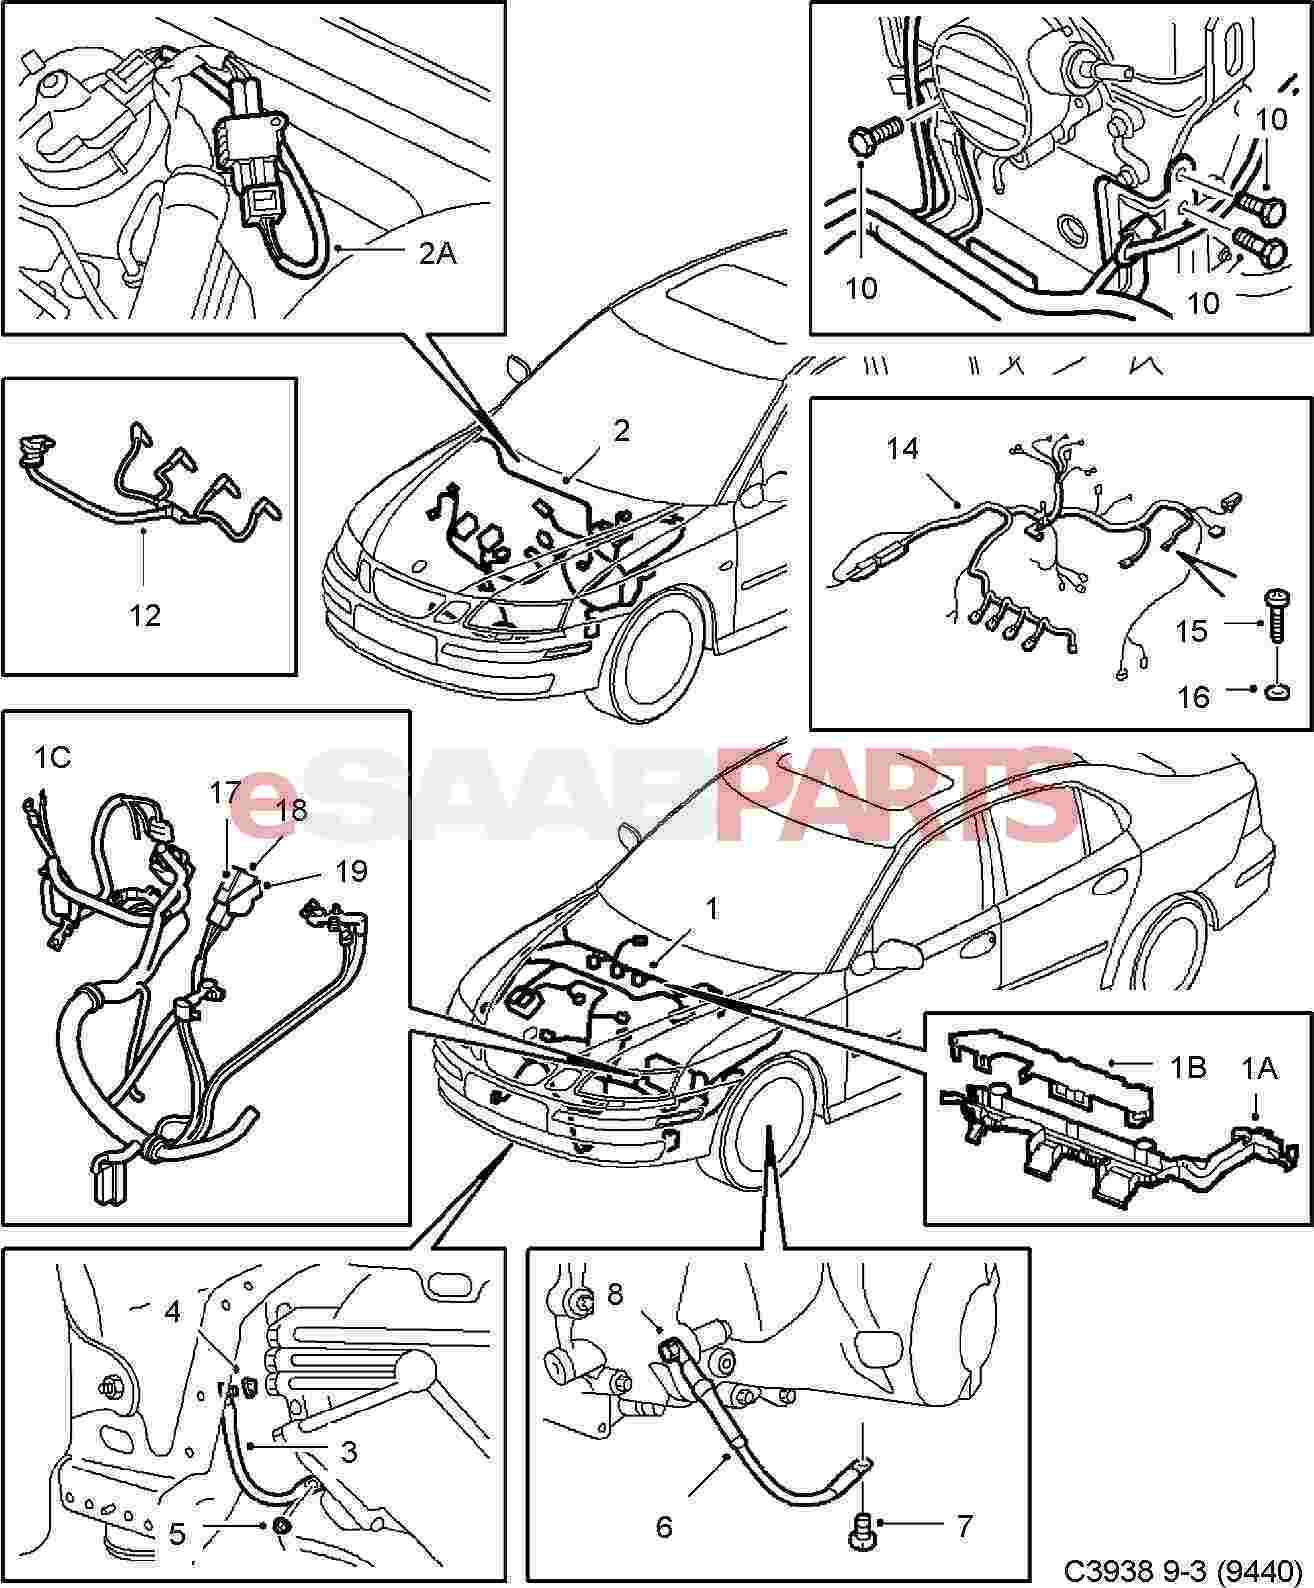 Saab 9 3 Electric Diagram List Of Schematic Circuit 2003 Wiring Esaabparts Com 9440 U003e Electrical Parts Harness Rh